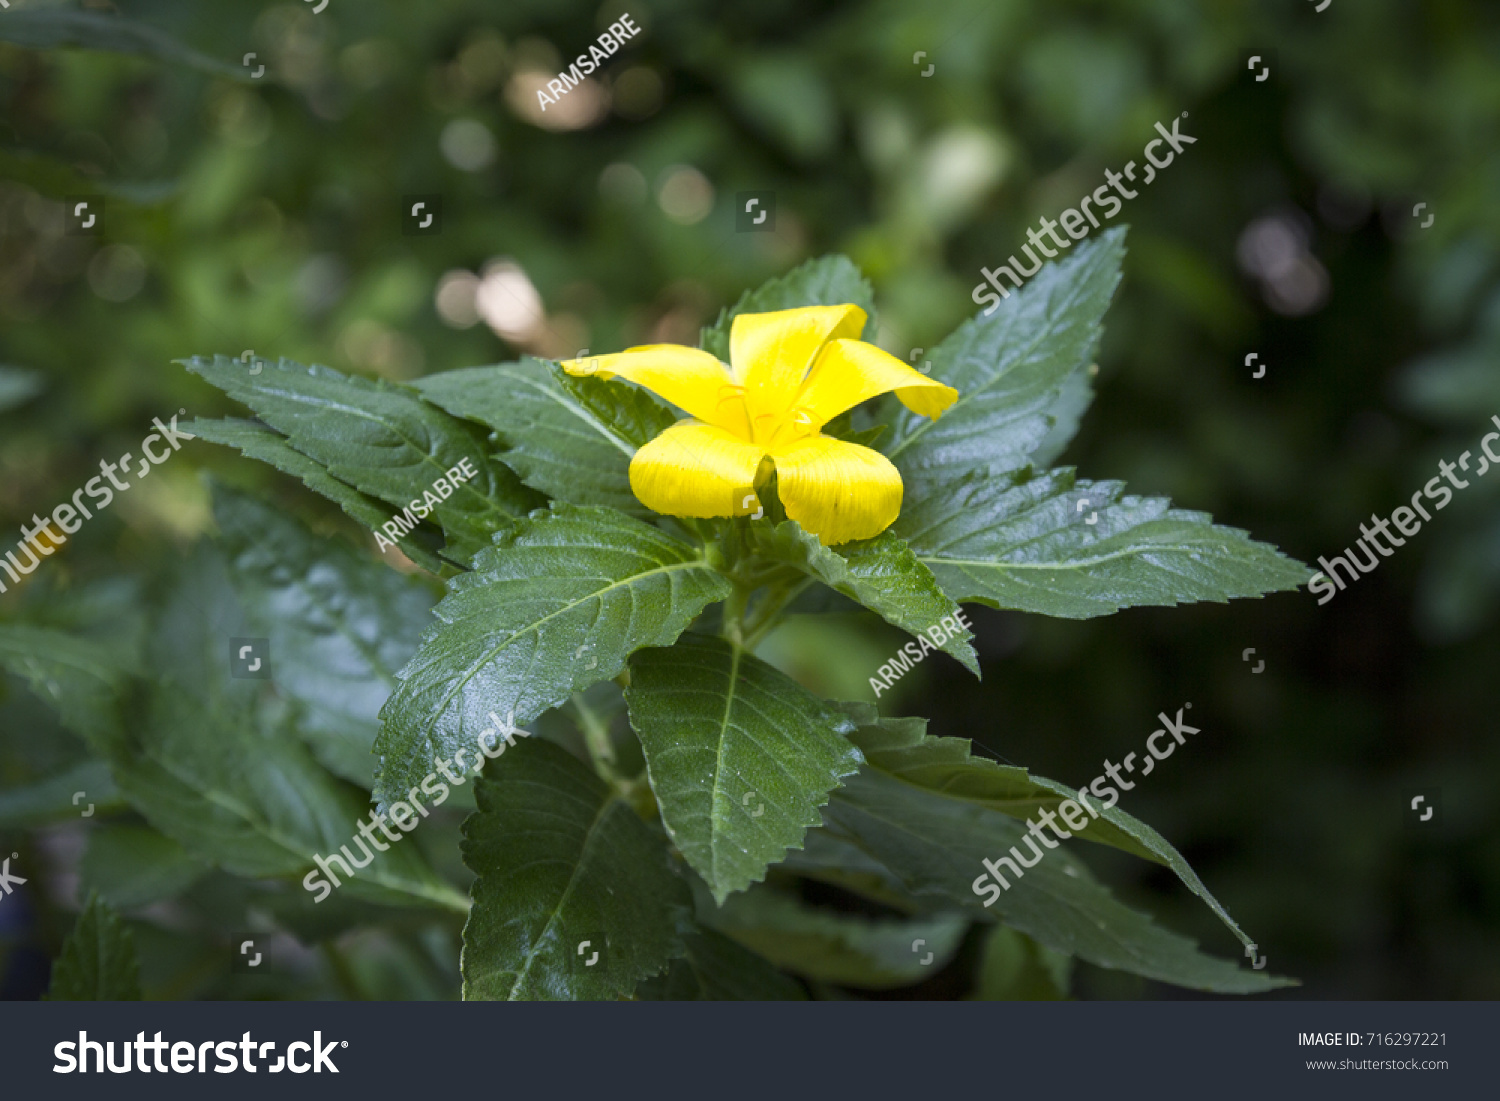 Yellow sage rose flower has 5 stock photo 716297221 shutterstock yellow sage rose flower has 5 petals mightylinksfo